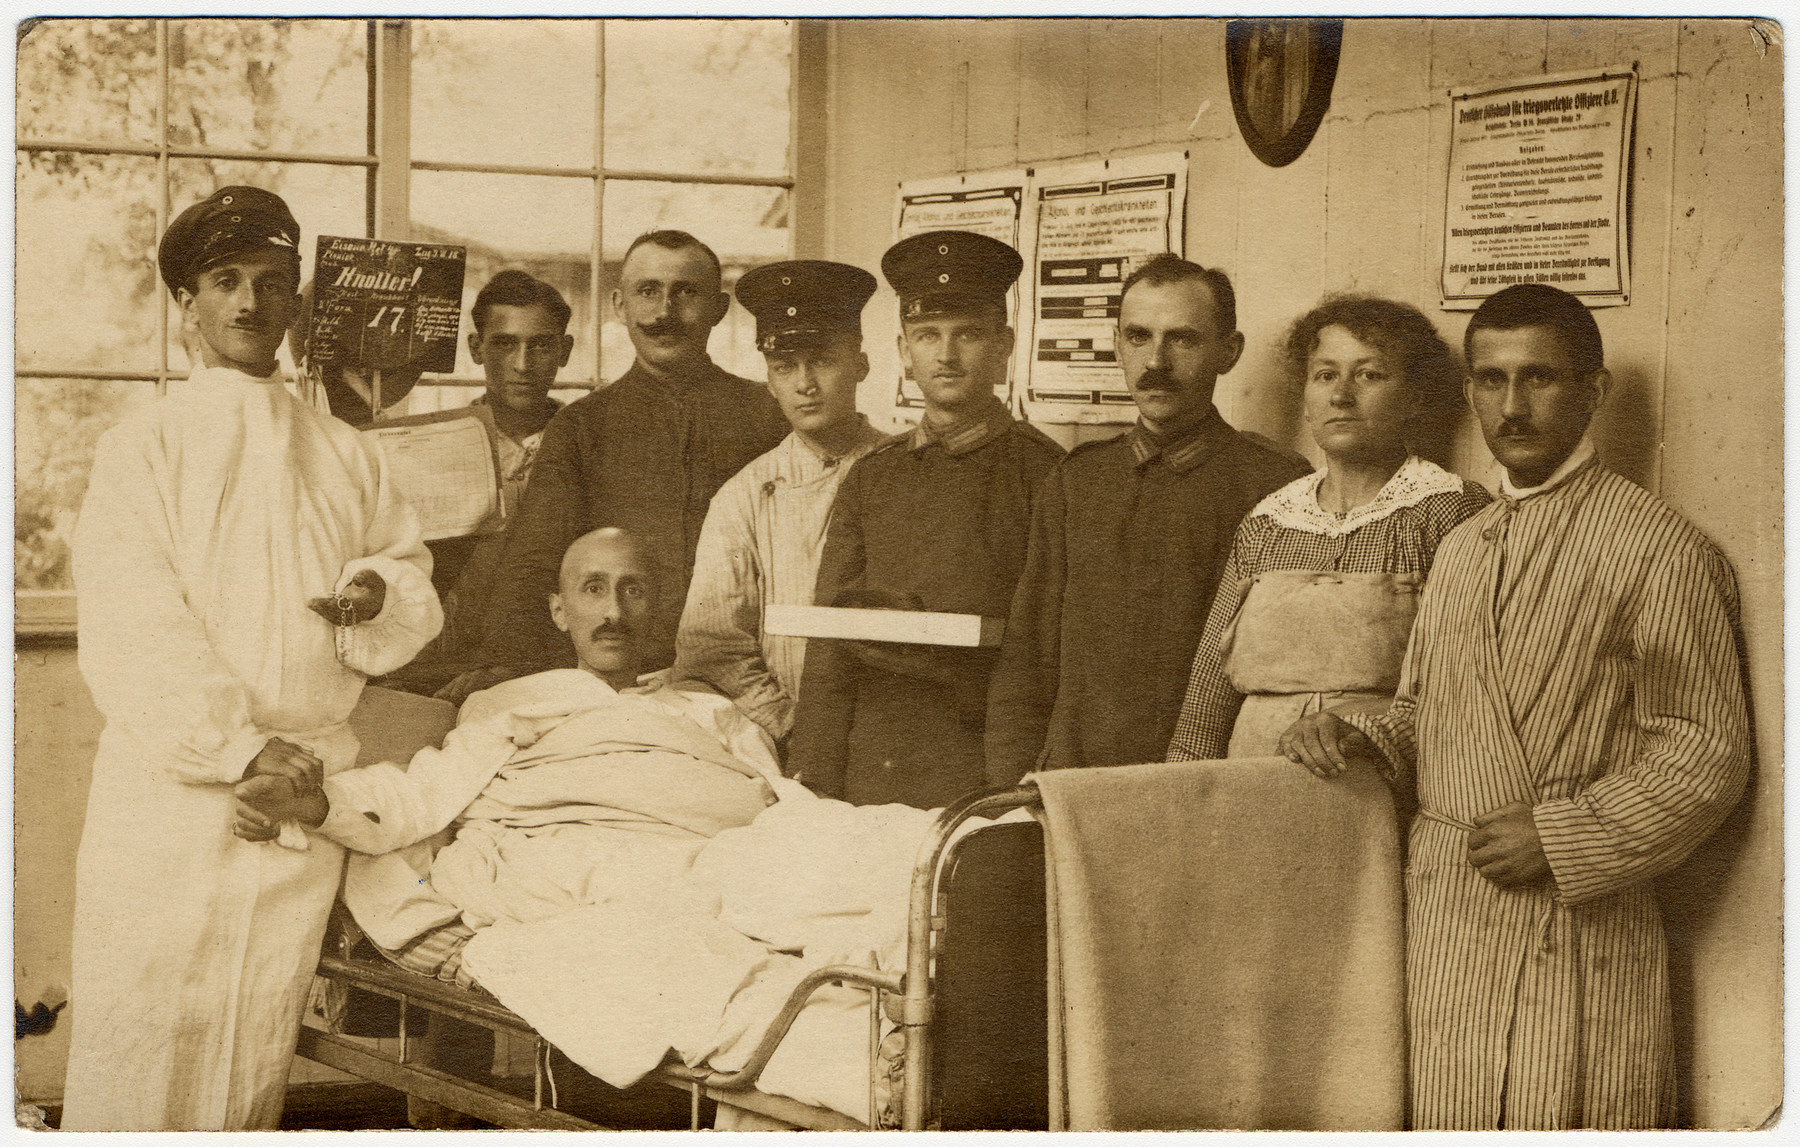 Friedrich Brodnitz (fourth from the left) visits a friend in a German military hospital.